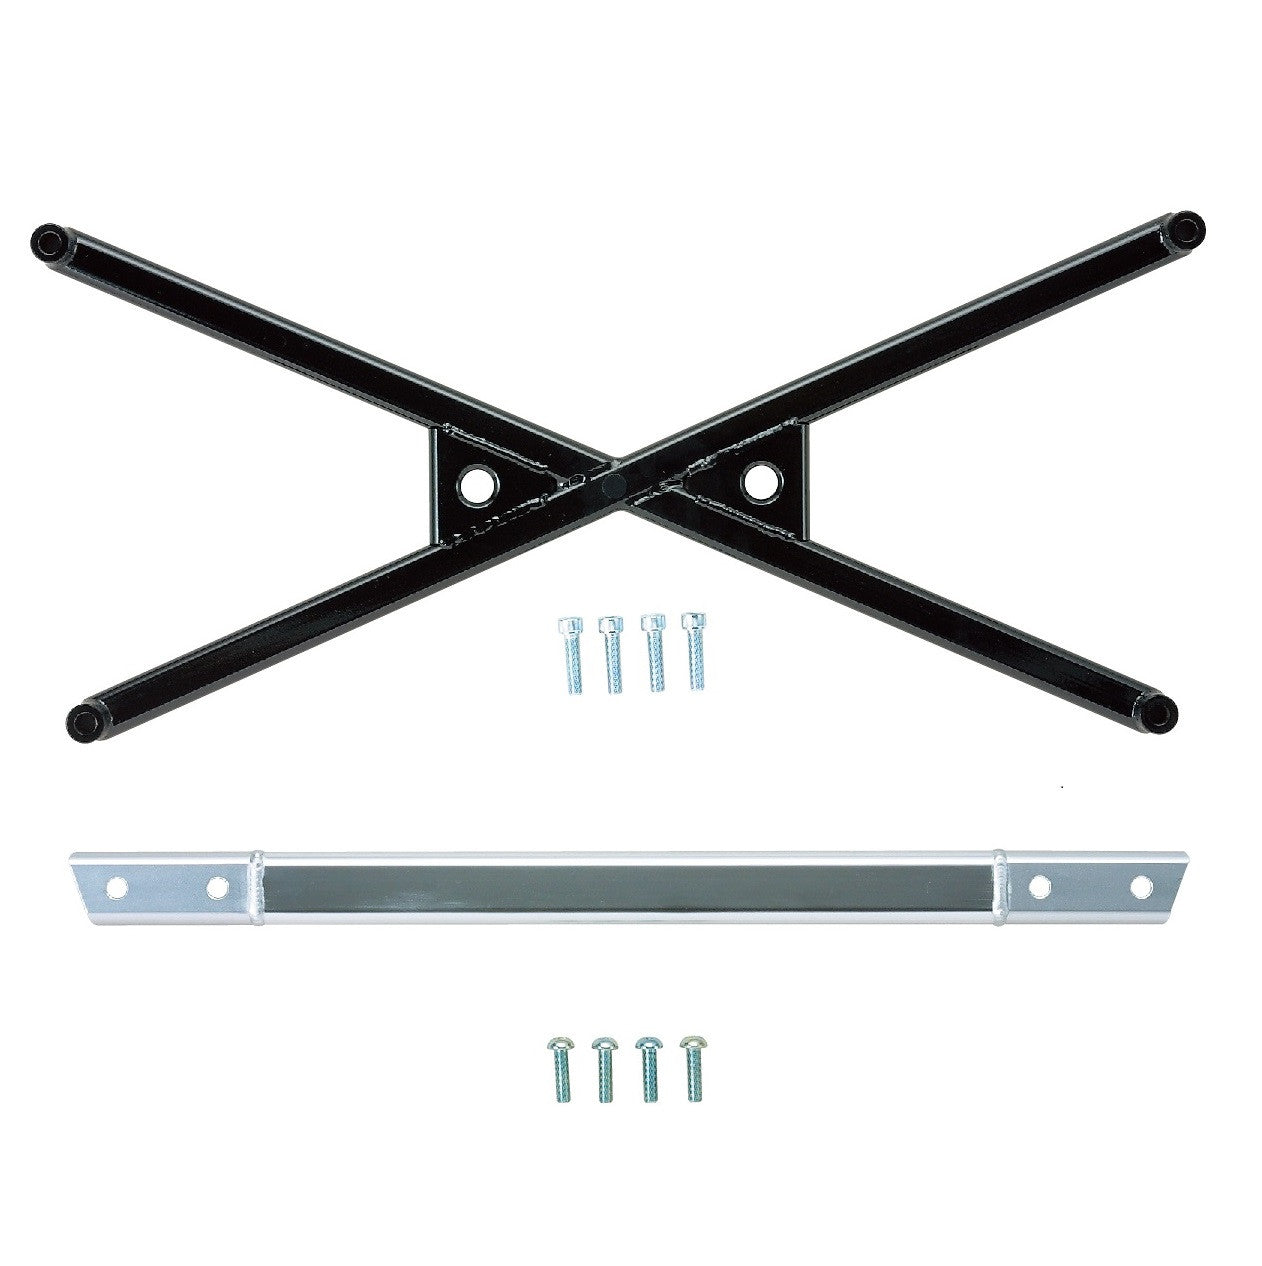 Spoon Sports Cross Beam Bars for S2000